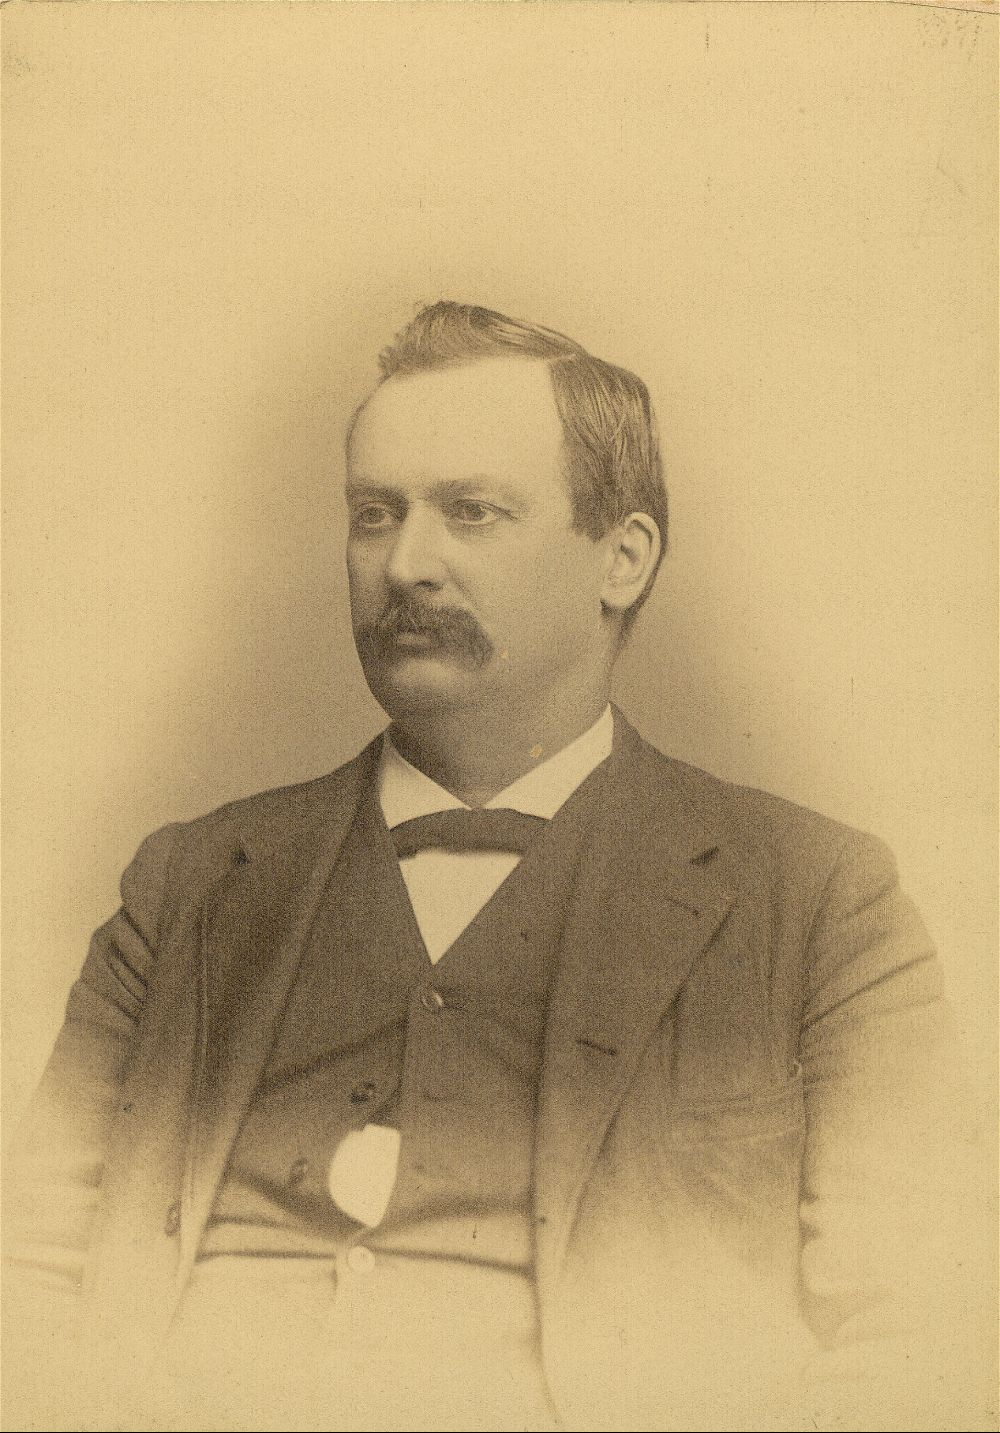 John A. Martin, Non-Delegate officer, 10th Governor of Kansas